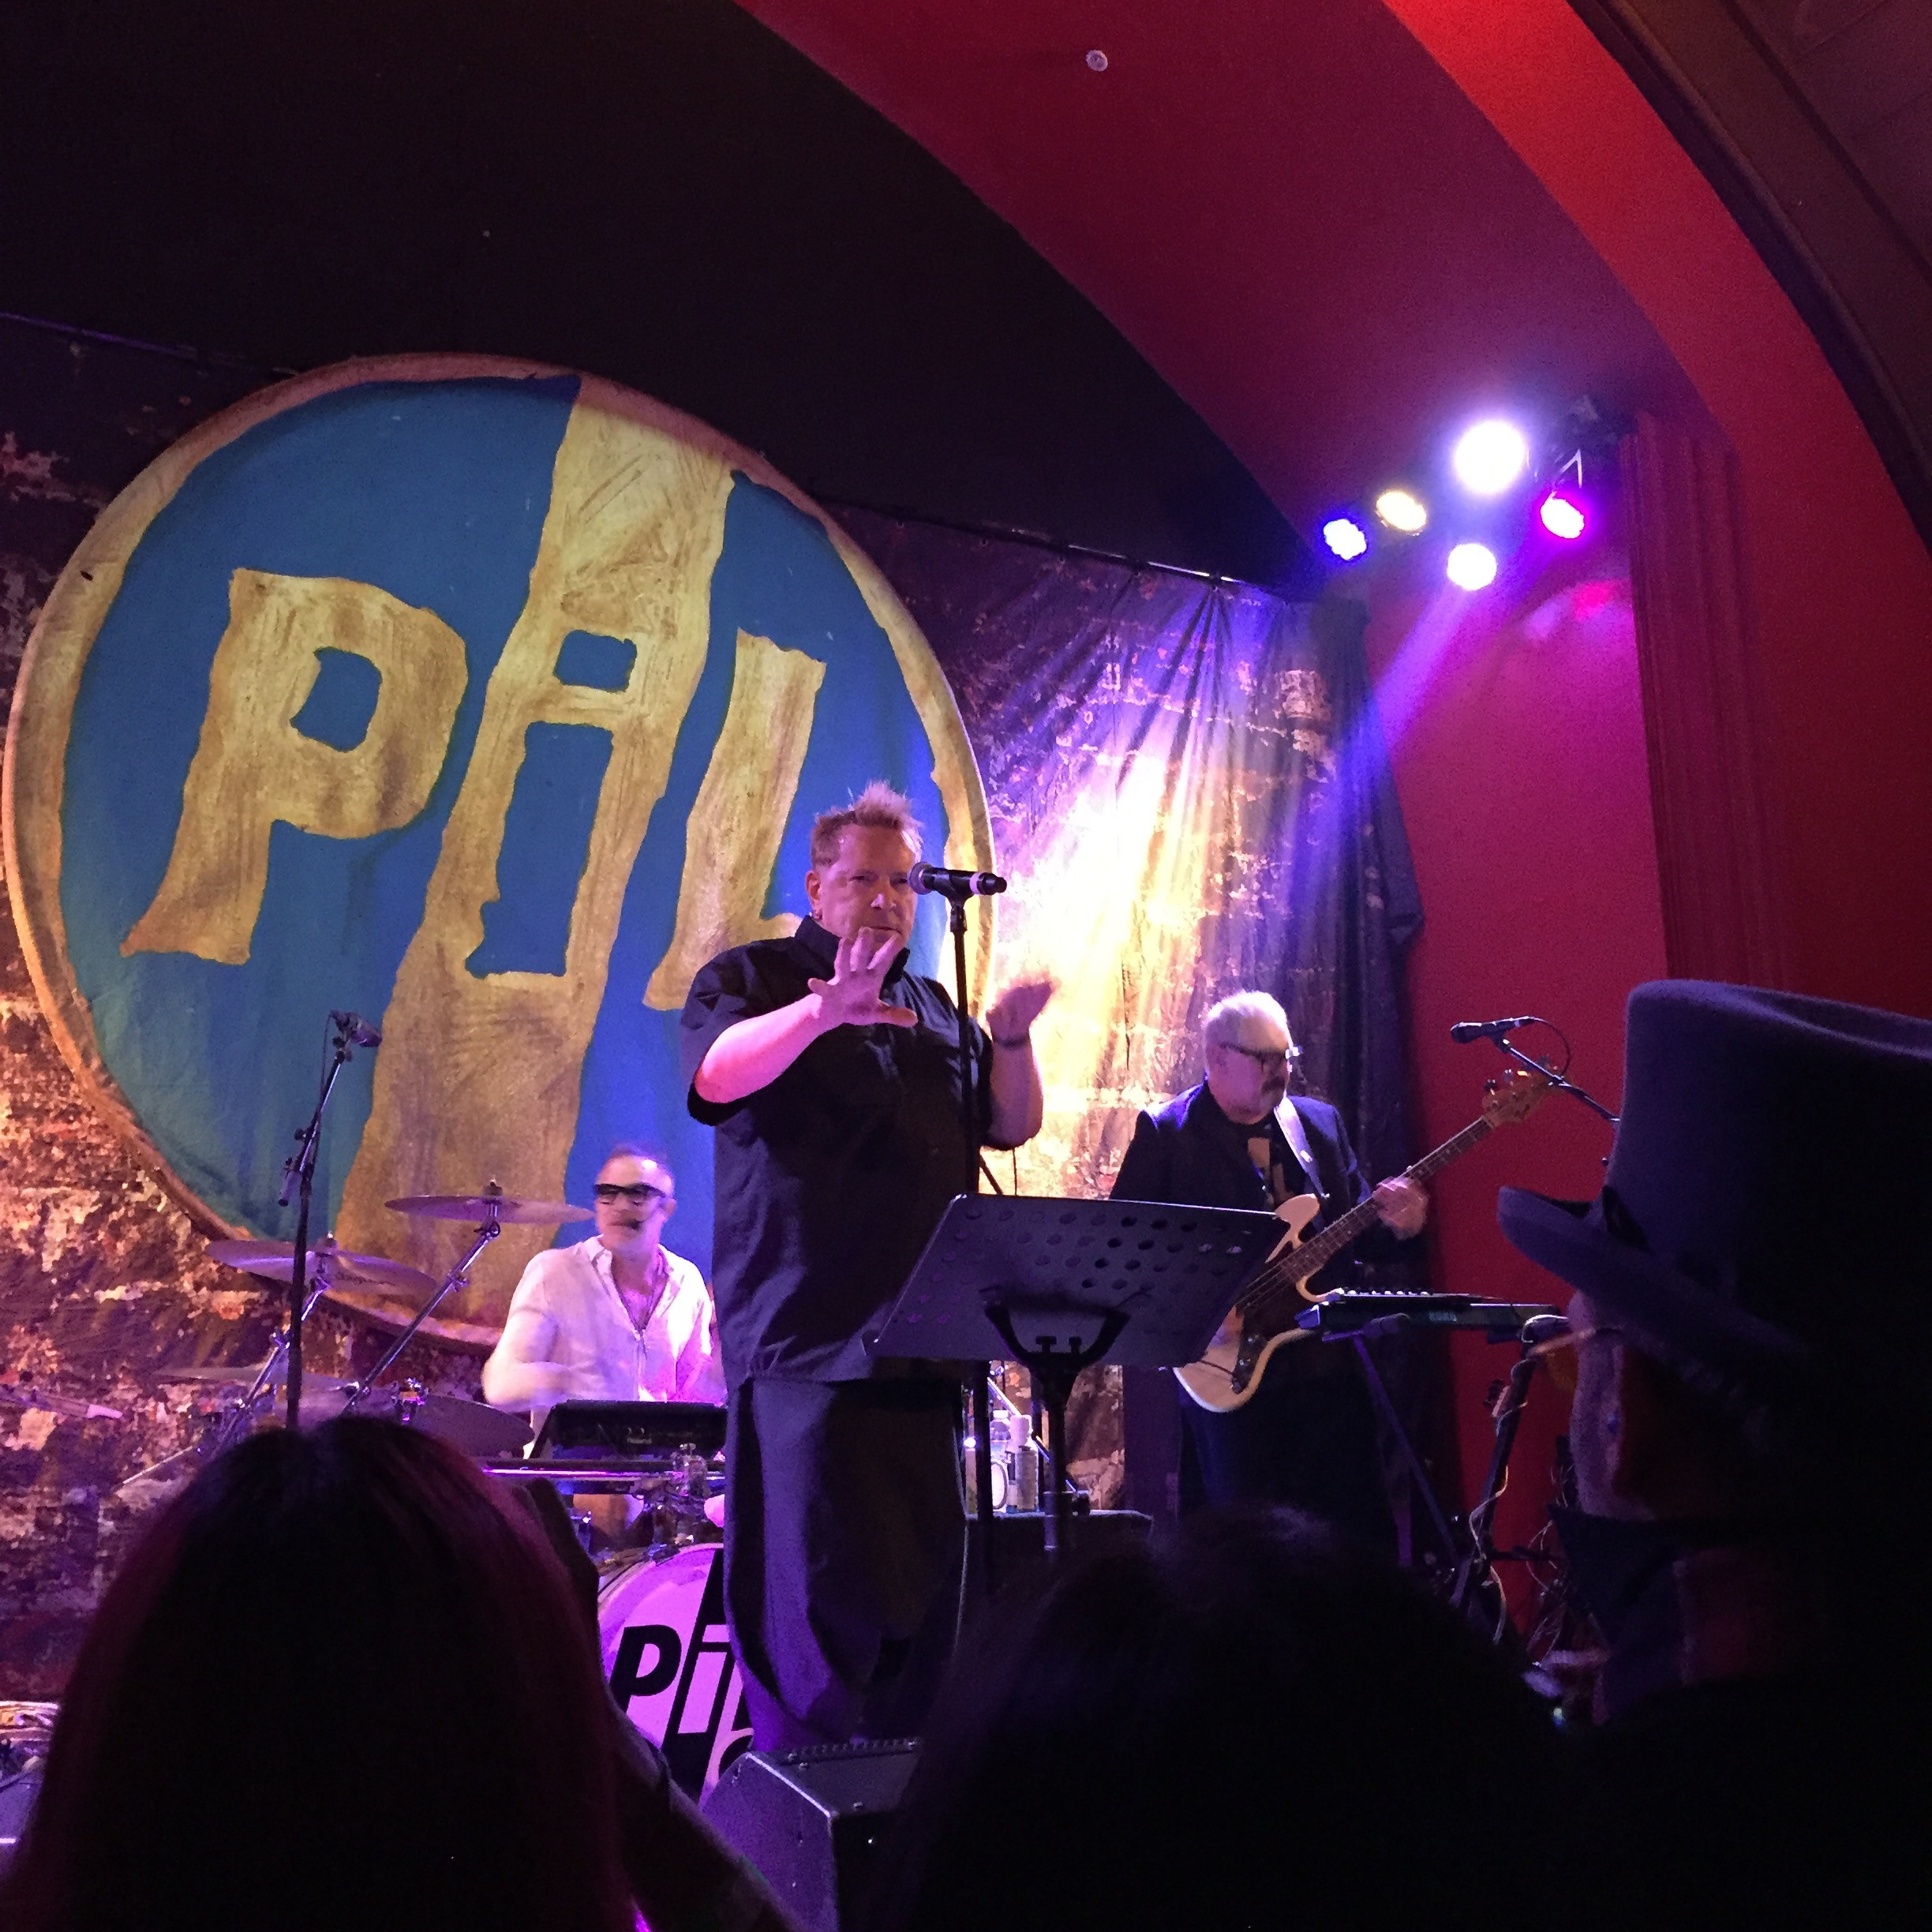 Public Image Ltd. Live In San Francisco